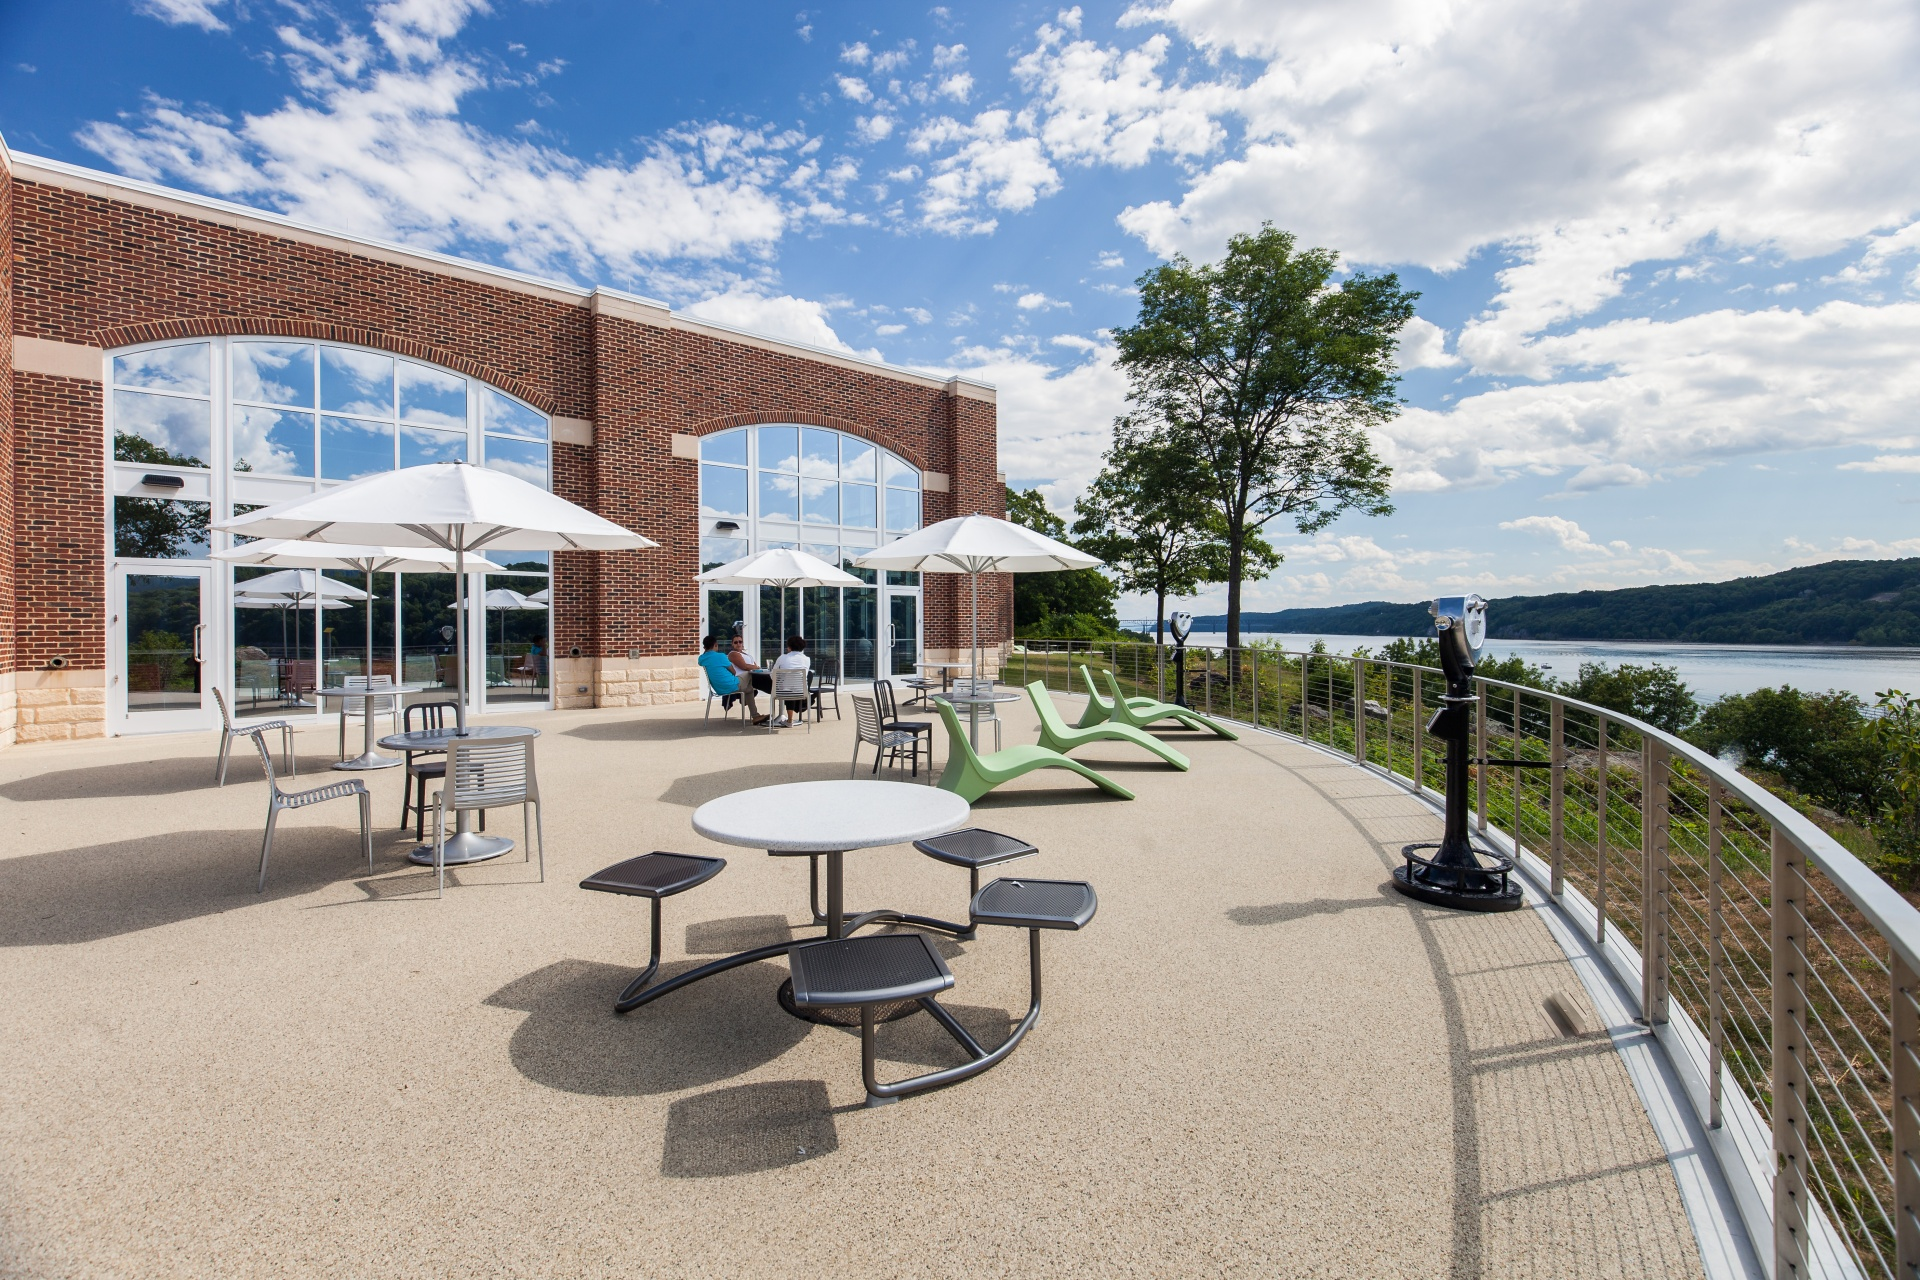 Hospitality, Higher Education - The Student Commons at Hyde Park Campus